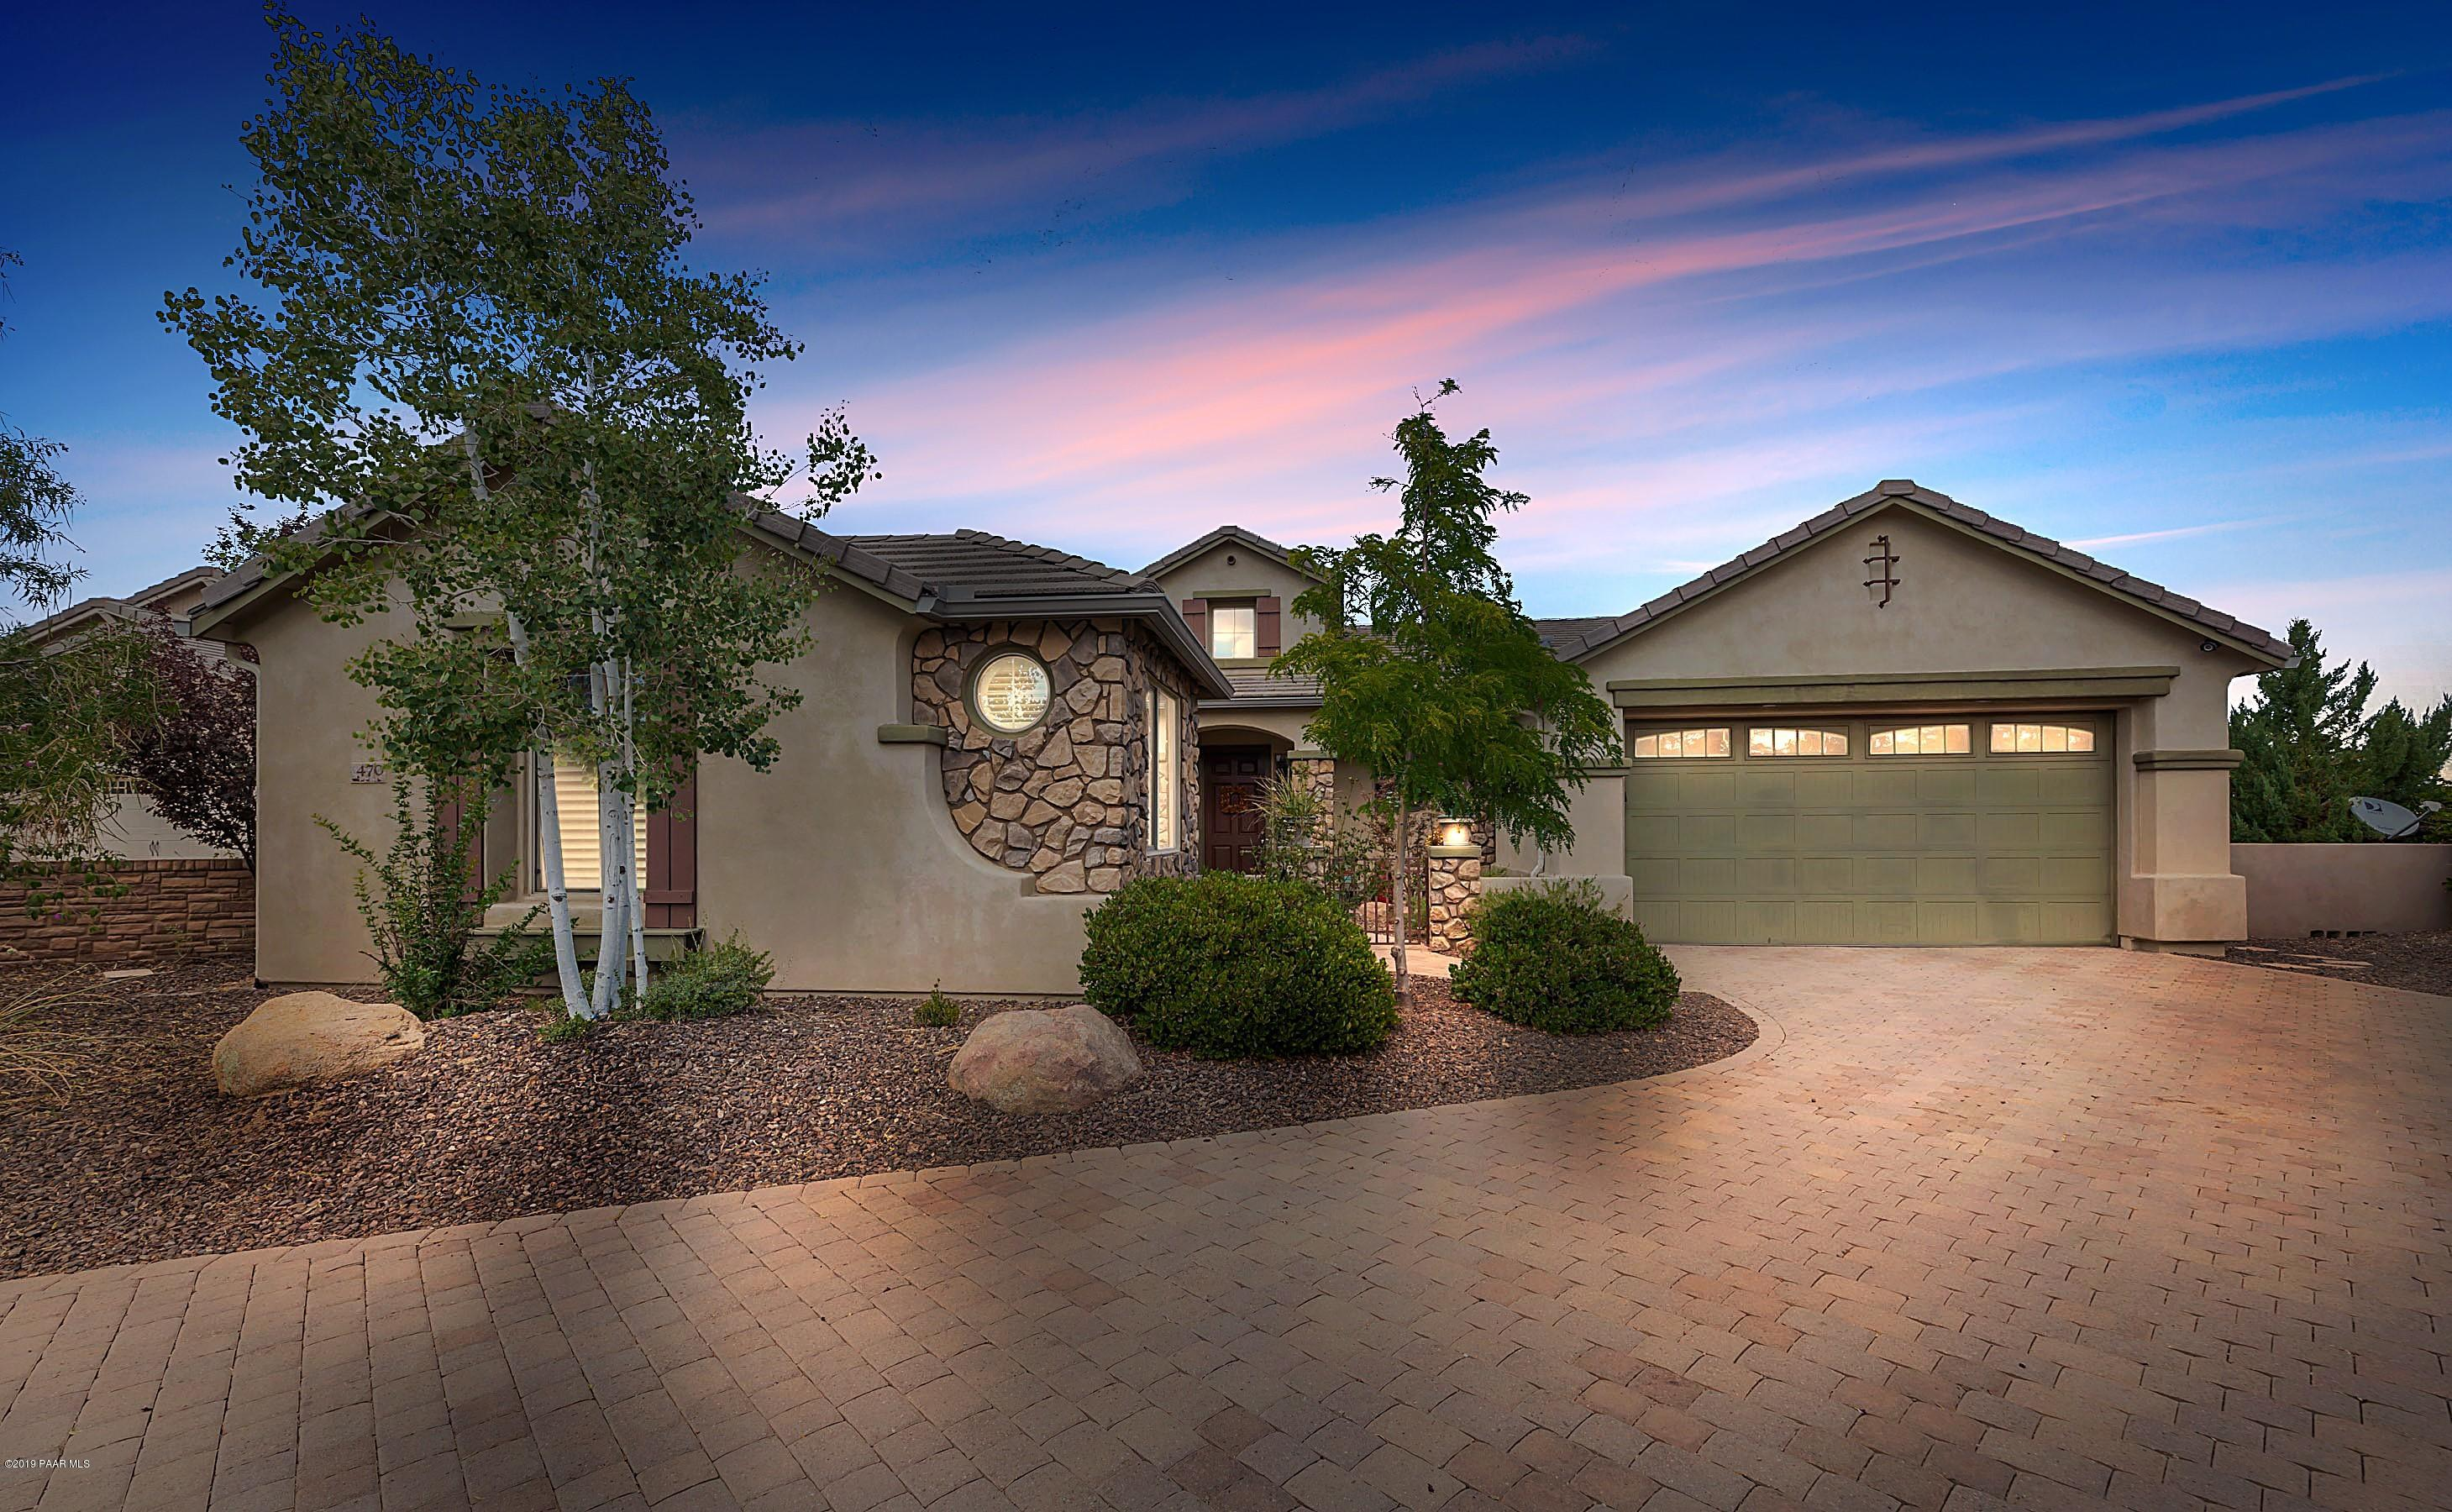 Photo of 470 Casa De Campo, Prescott, AZ 86301